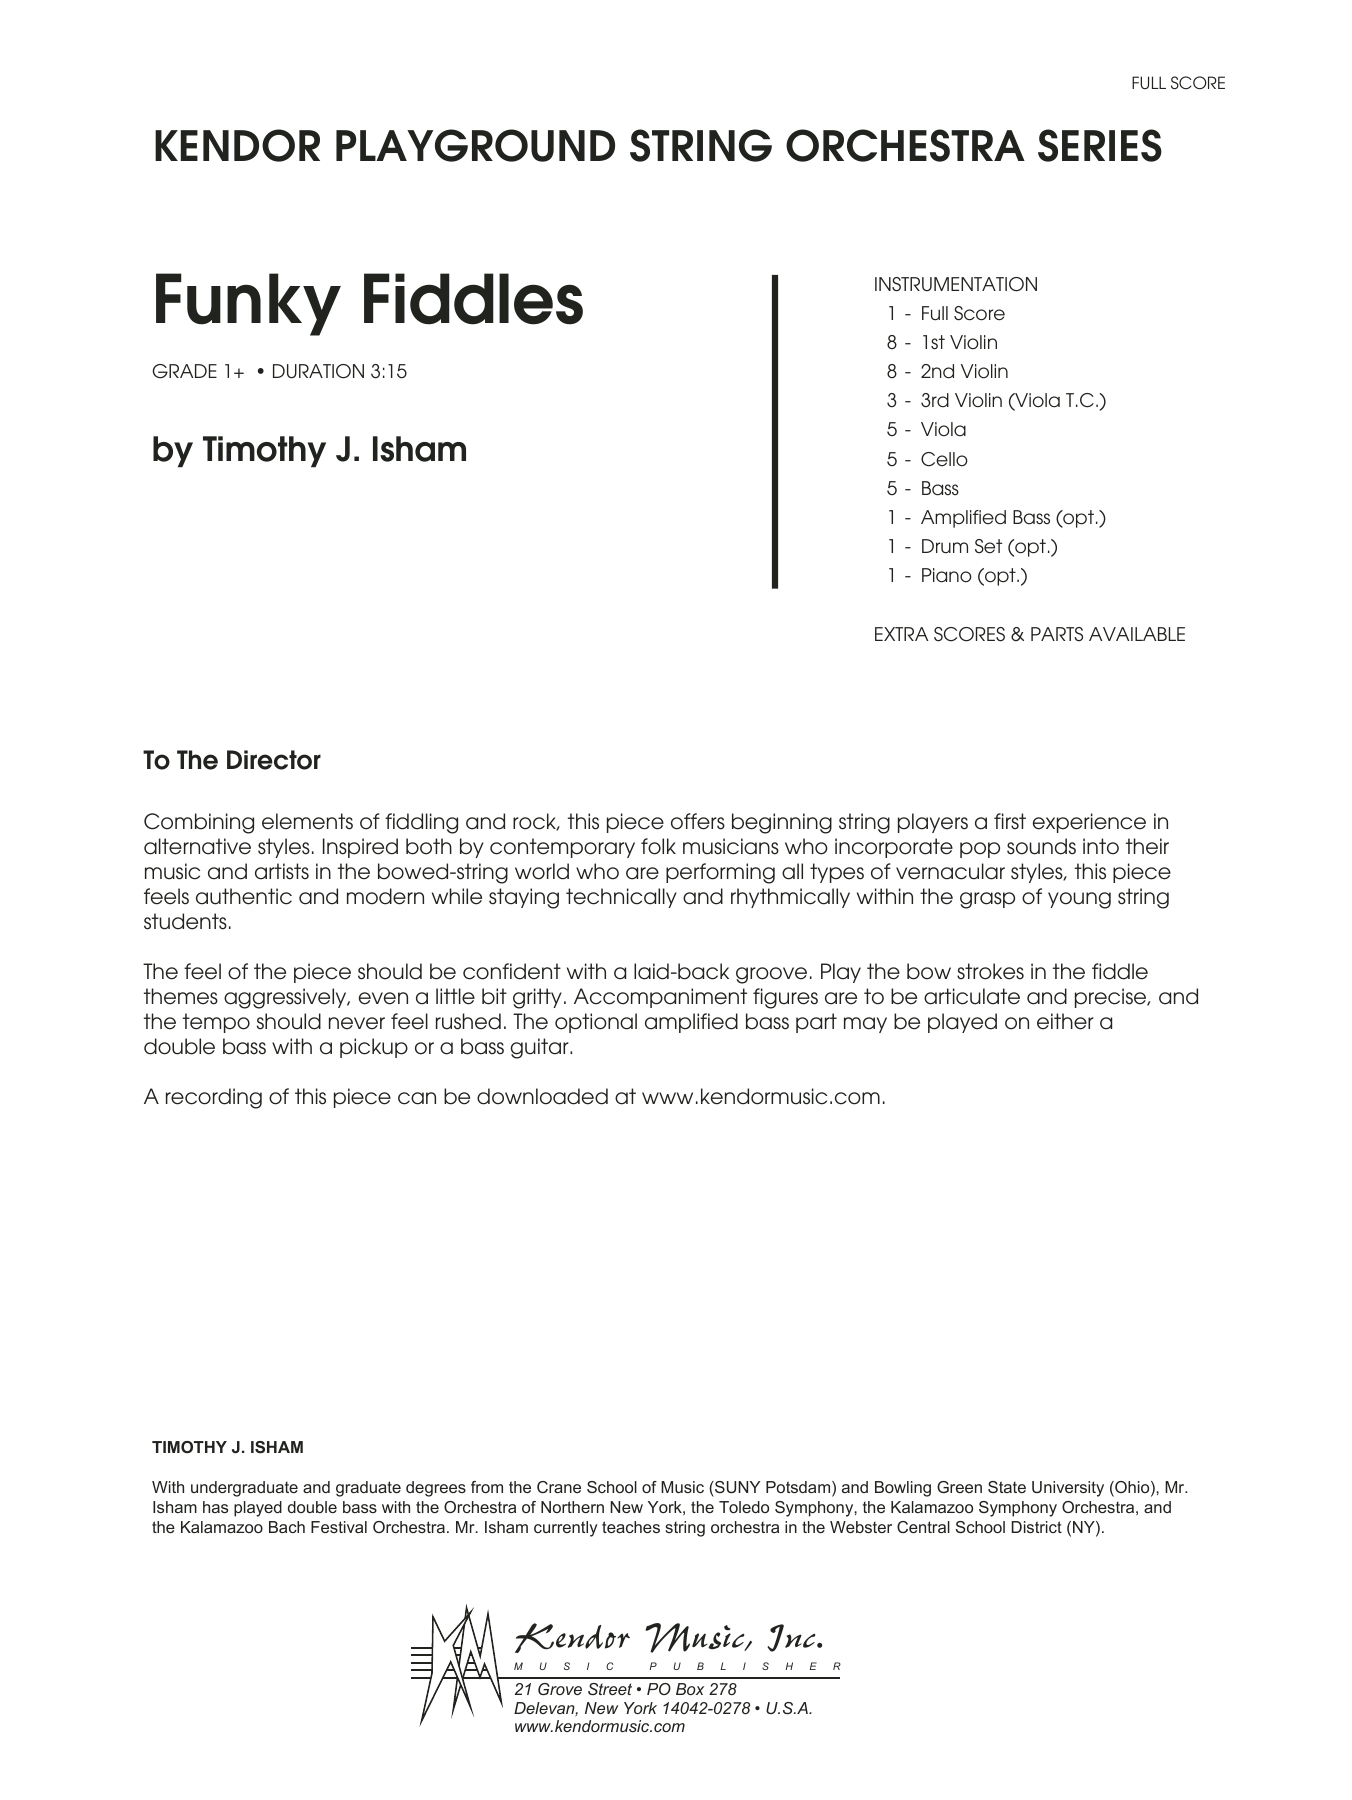 Funky Fiddles (COMPLETE) sheet music for orchestra by Timothy Isham. Score Image Preview.